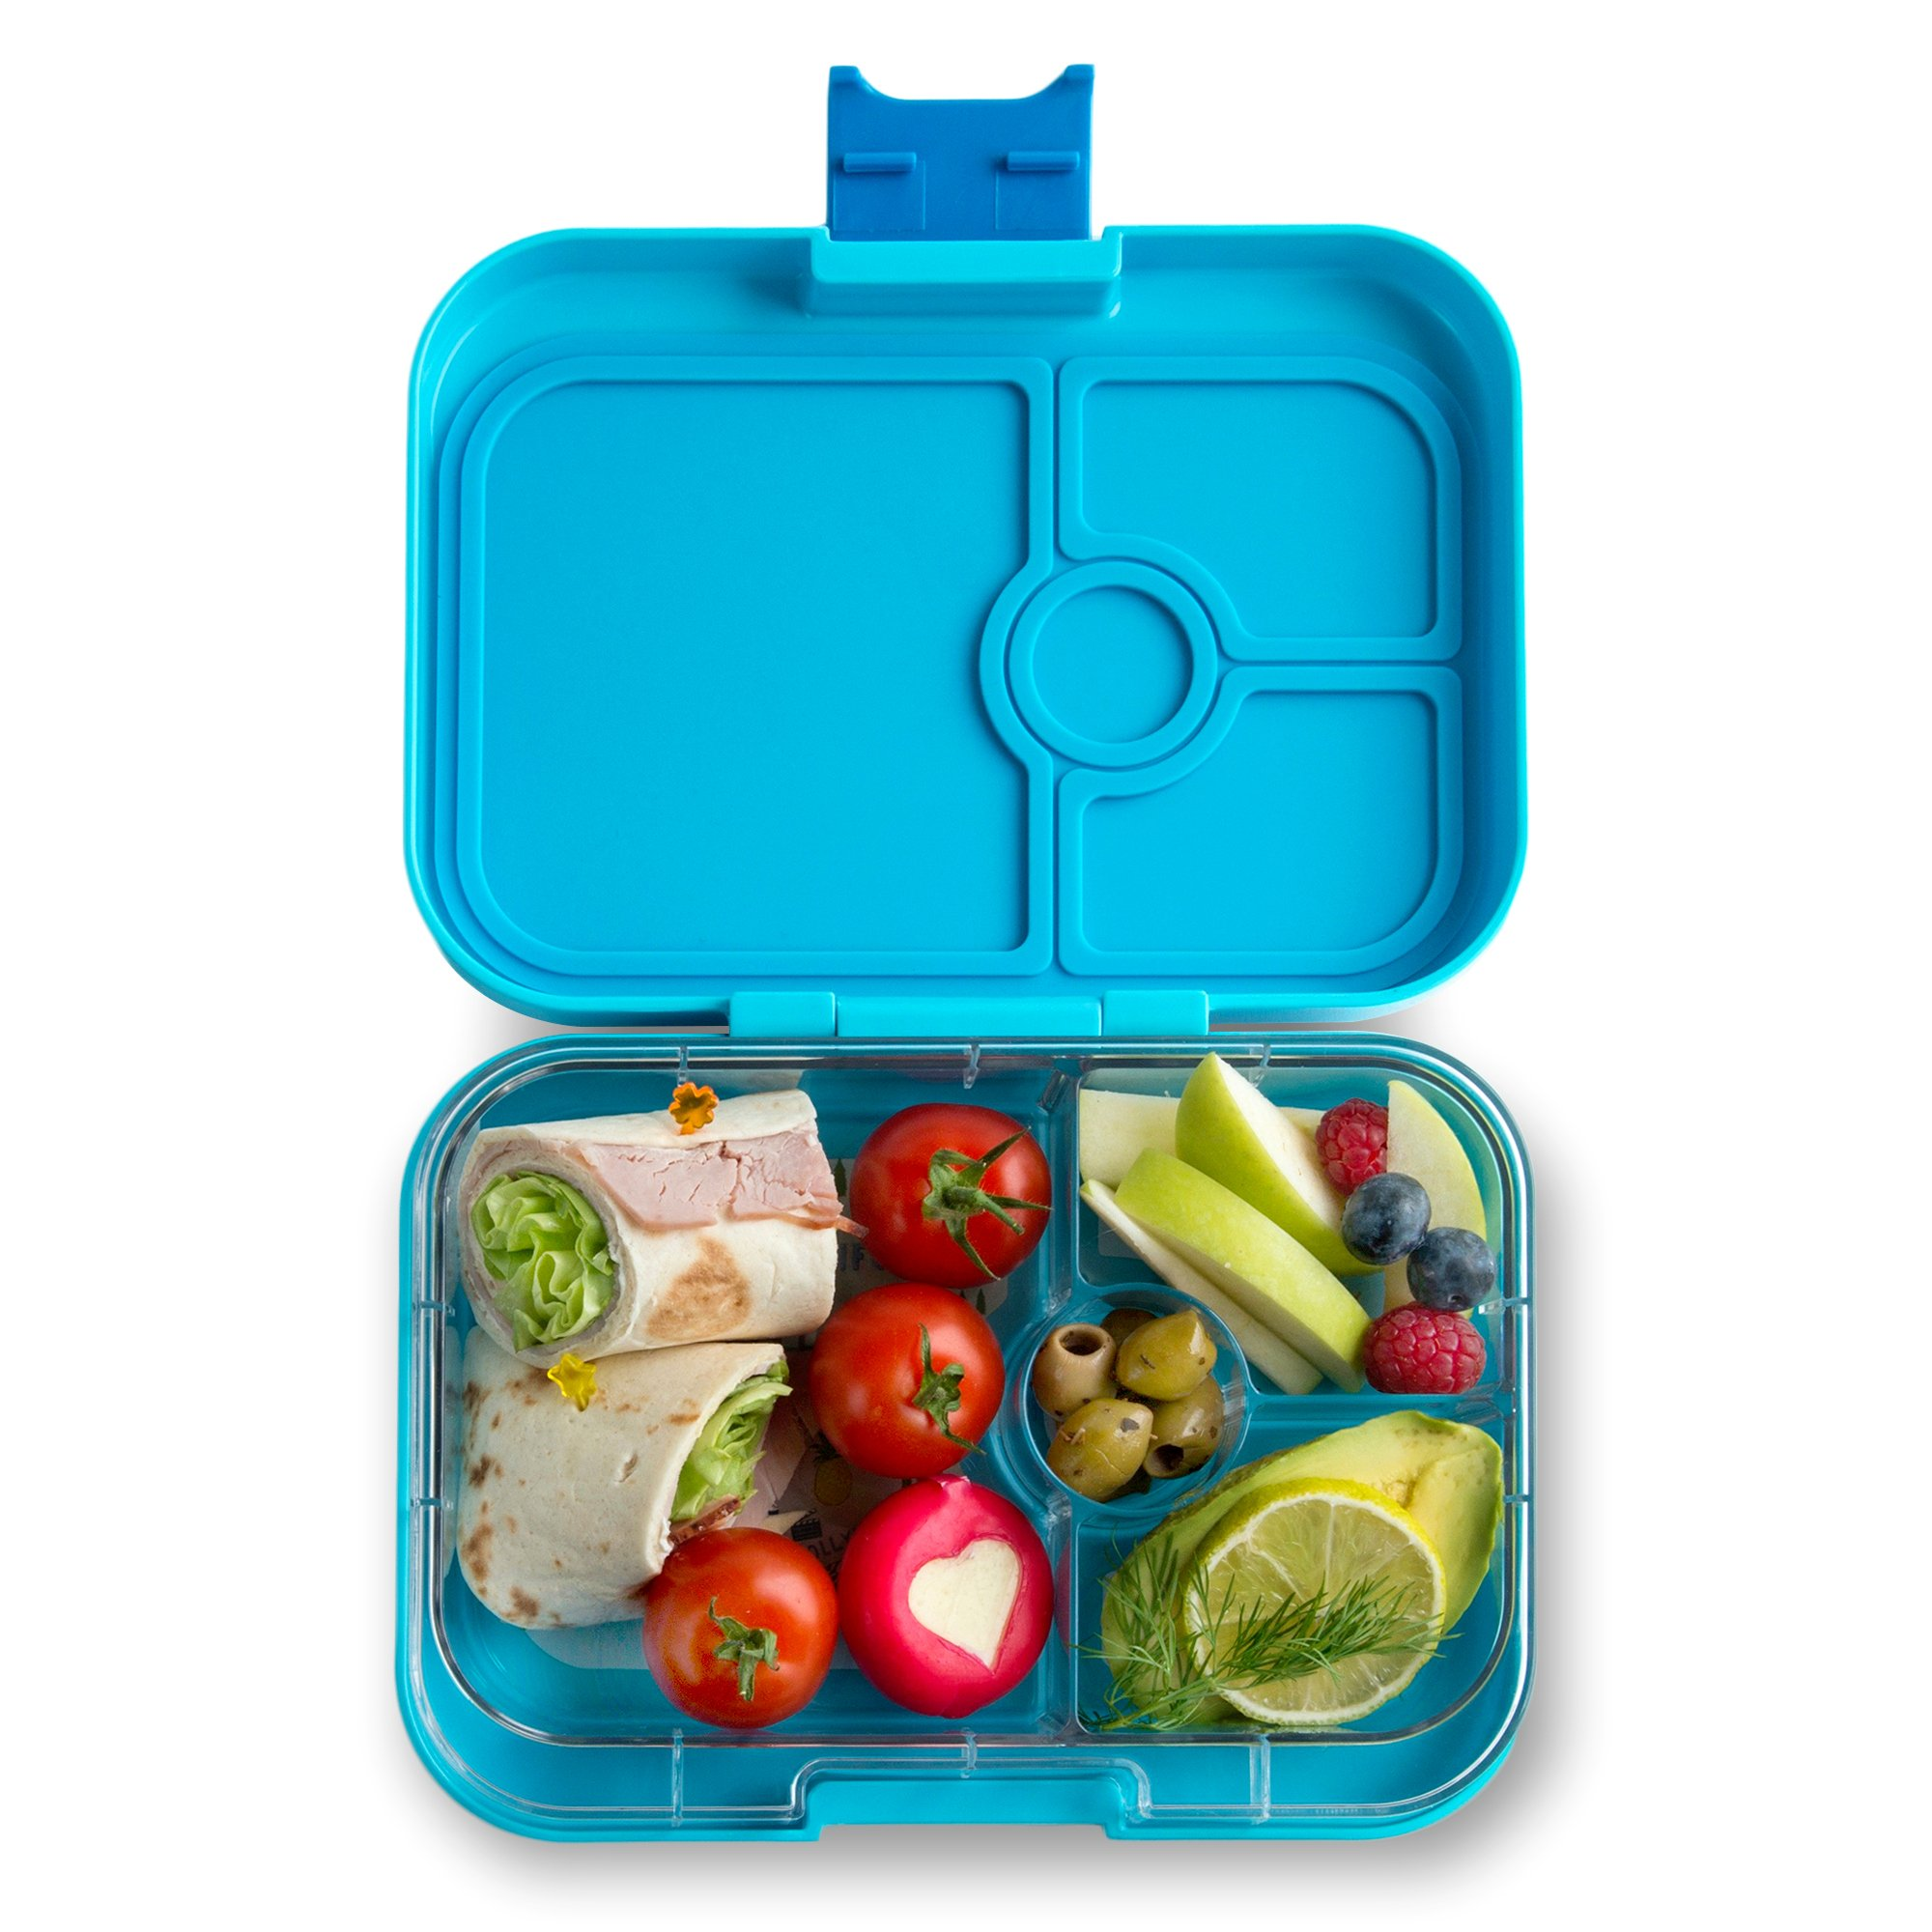 YUMBOX Panino (Blue Fish) Leakproof Bento Lunch Box Container for Kids & Adults;Bento-style lunch box offers Durable, Leak-proof, On-the-go Meal and Snack Packing